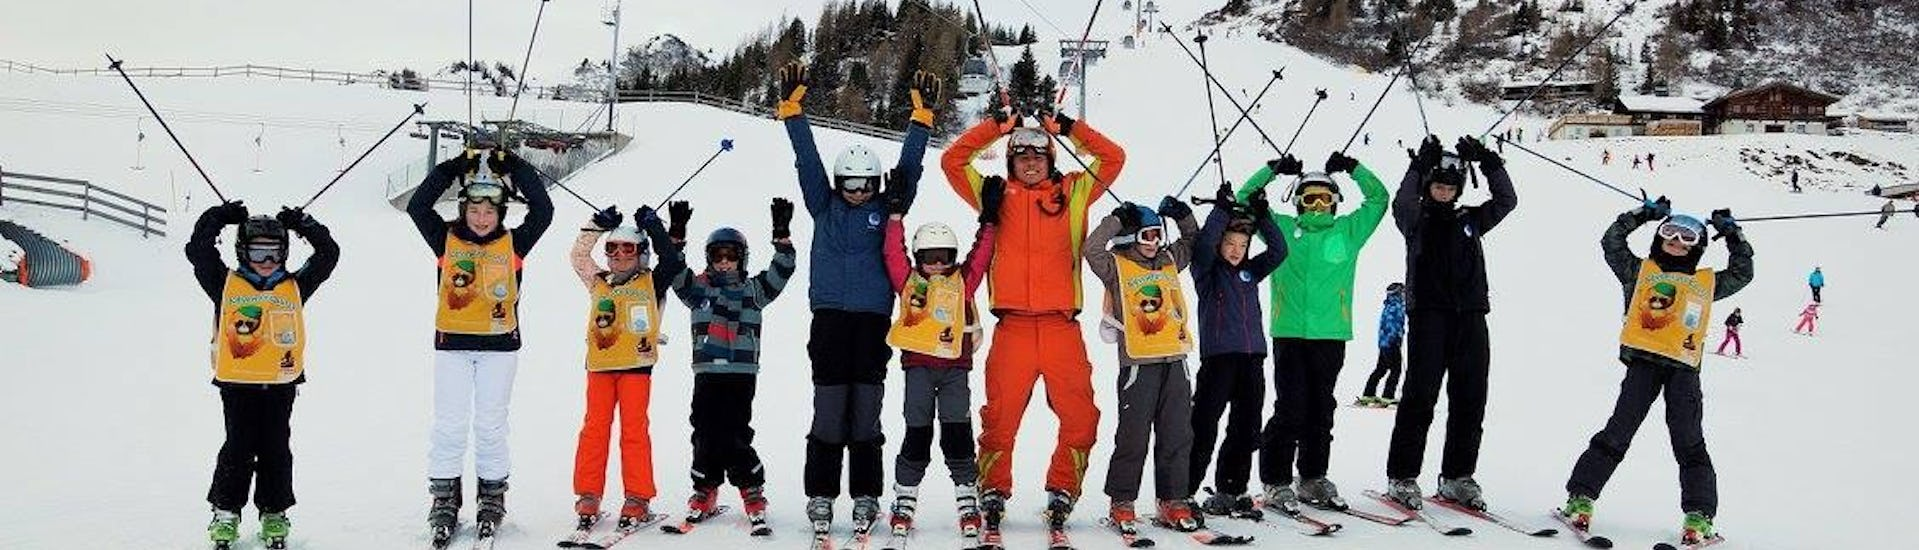 """Ski Lessons """"All-in-One"""" for Kids (7-12 years) - All Levels"""